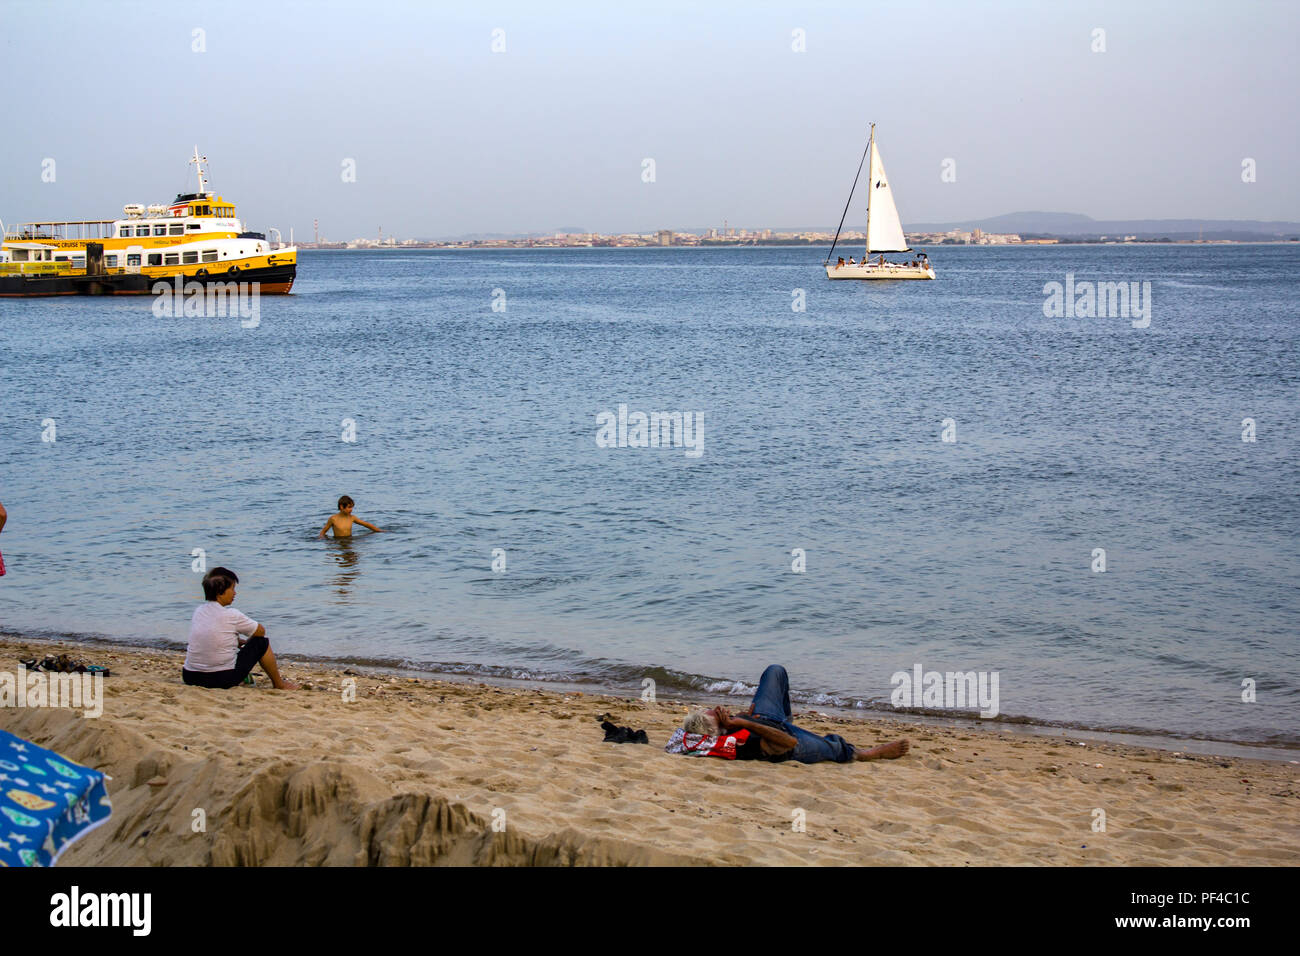 People are cooling at tagus river on one of the hottest summer days in Portugal - Stock Image